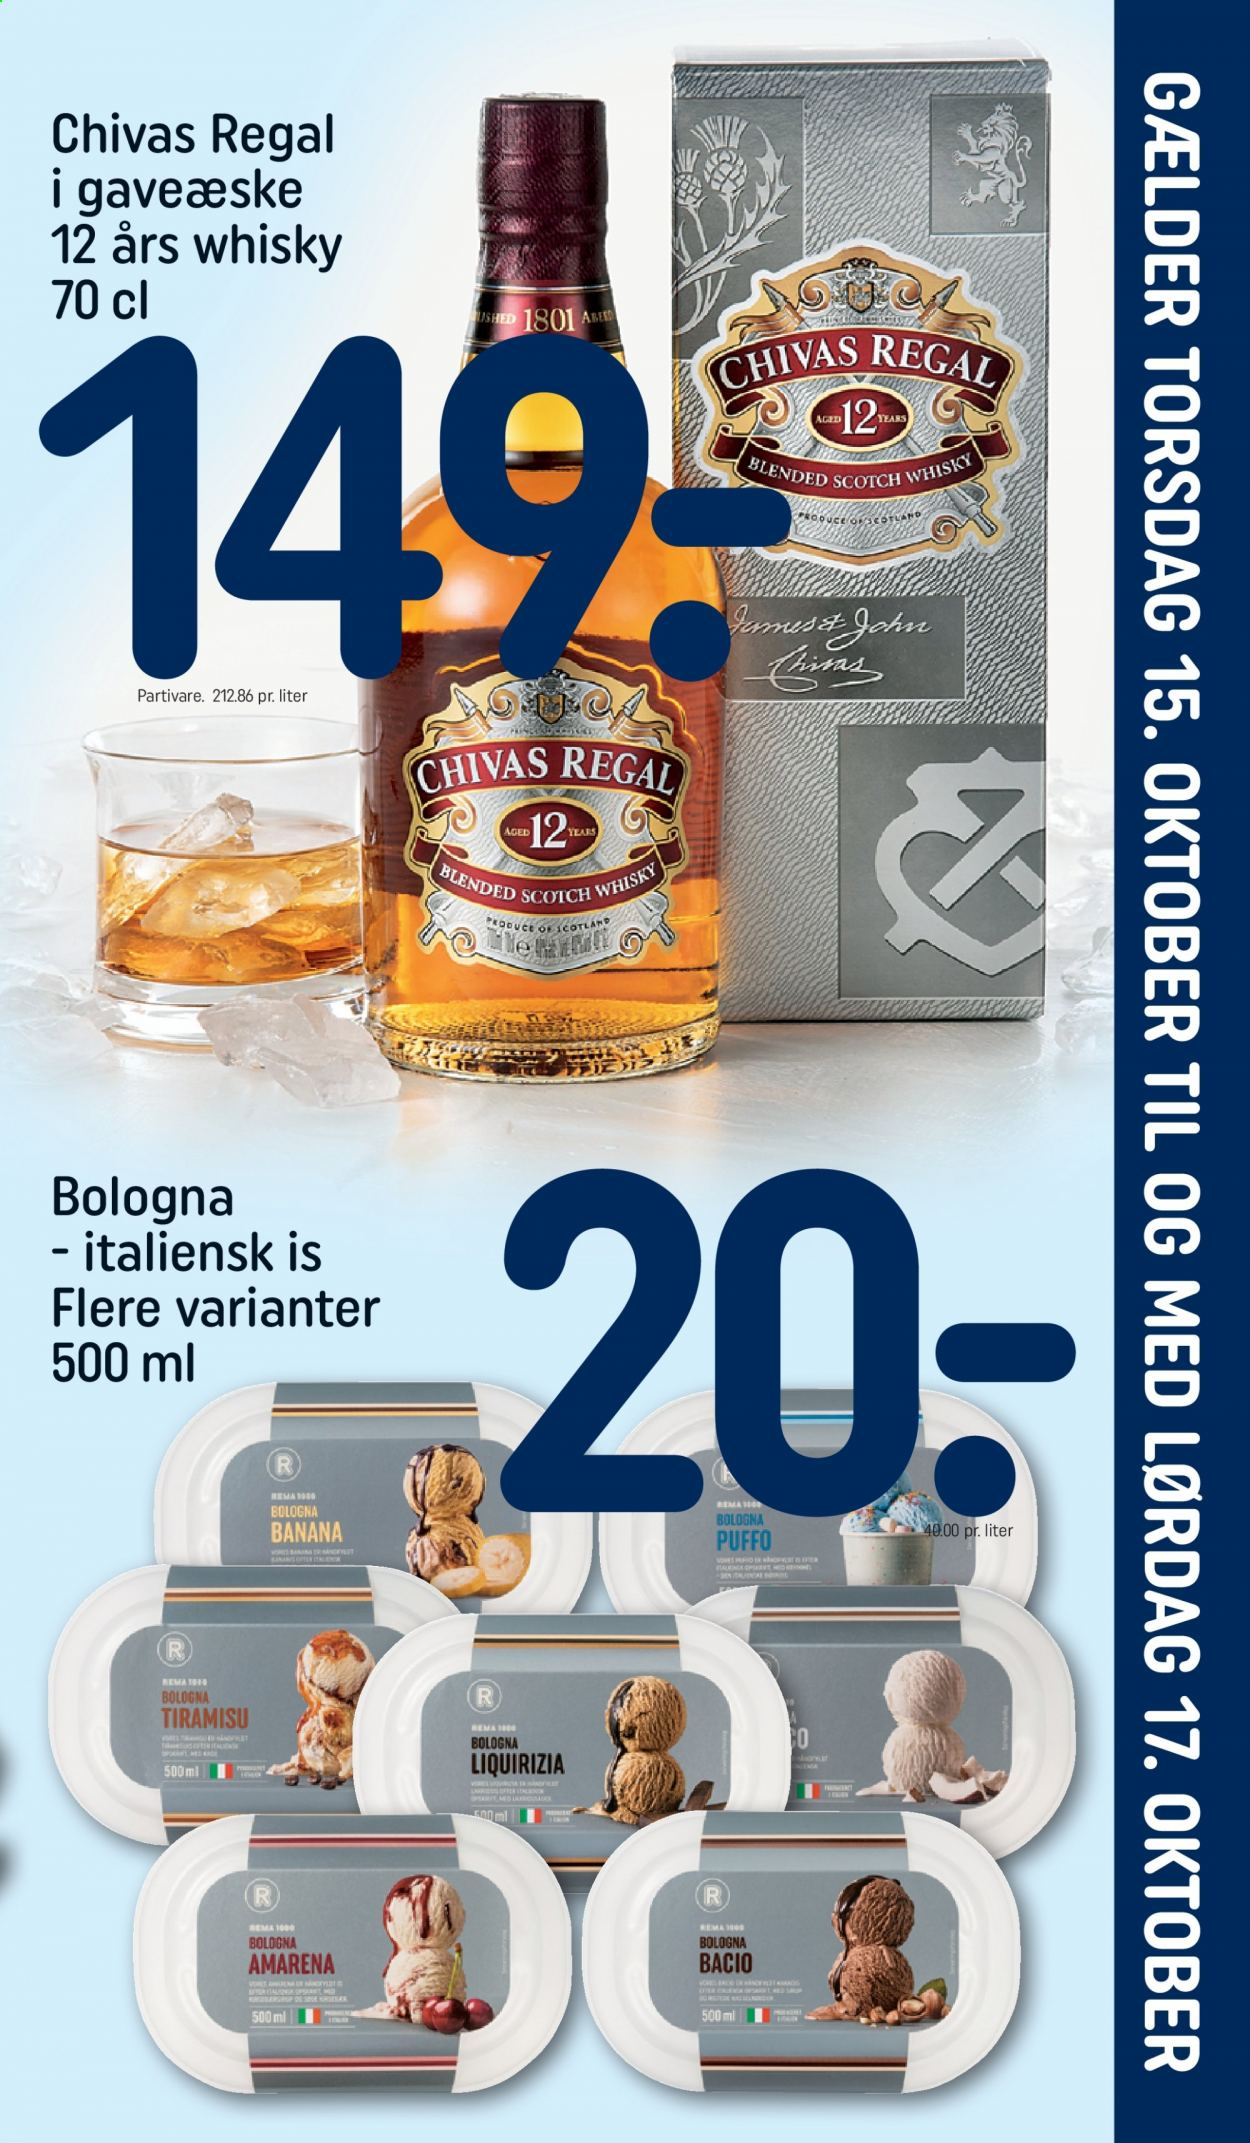 Rema 1000 tilbud  - 15.10.2020 - 17.10.2020 - tilbudsprodukter - blended scotch whisky, scotch whisky, tiramisu, whisky. Side 1.